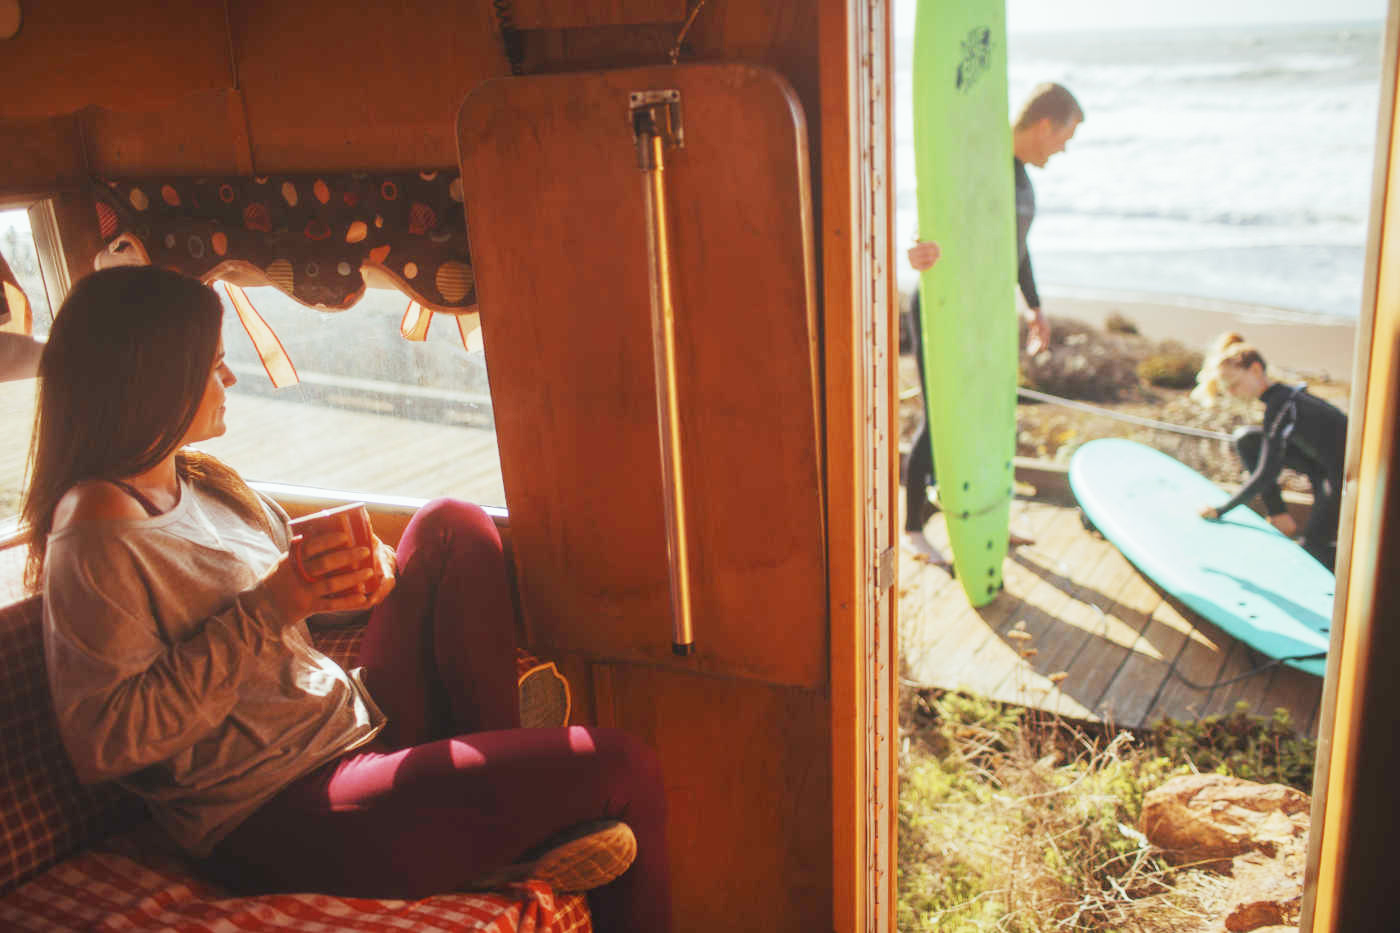 A woman sits in her RV and watches as her children wax surfboards.